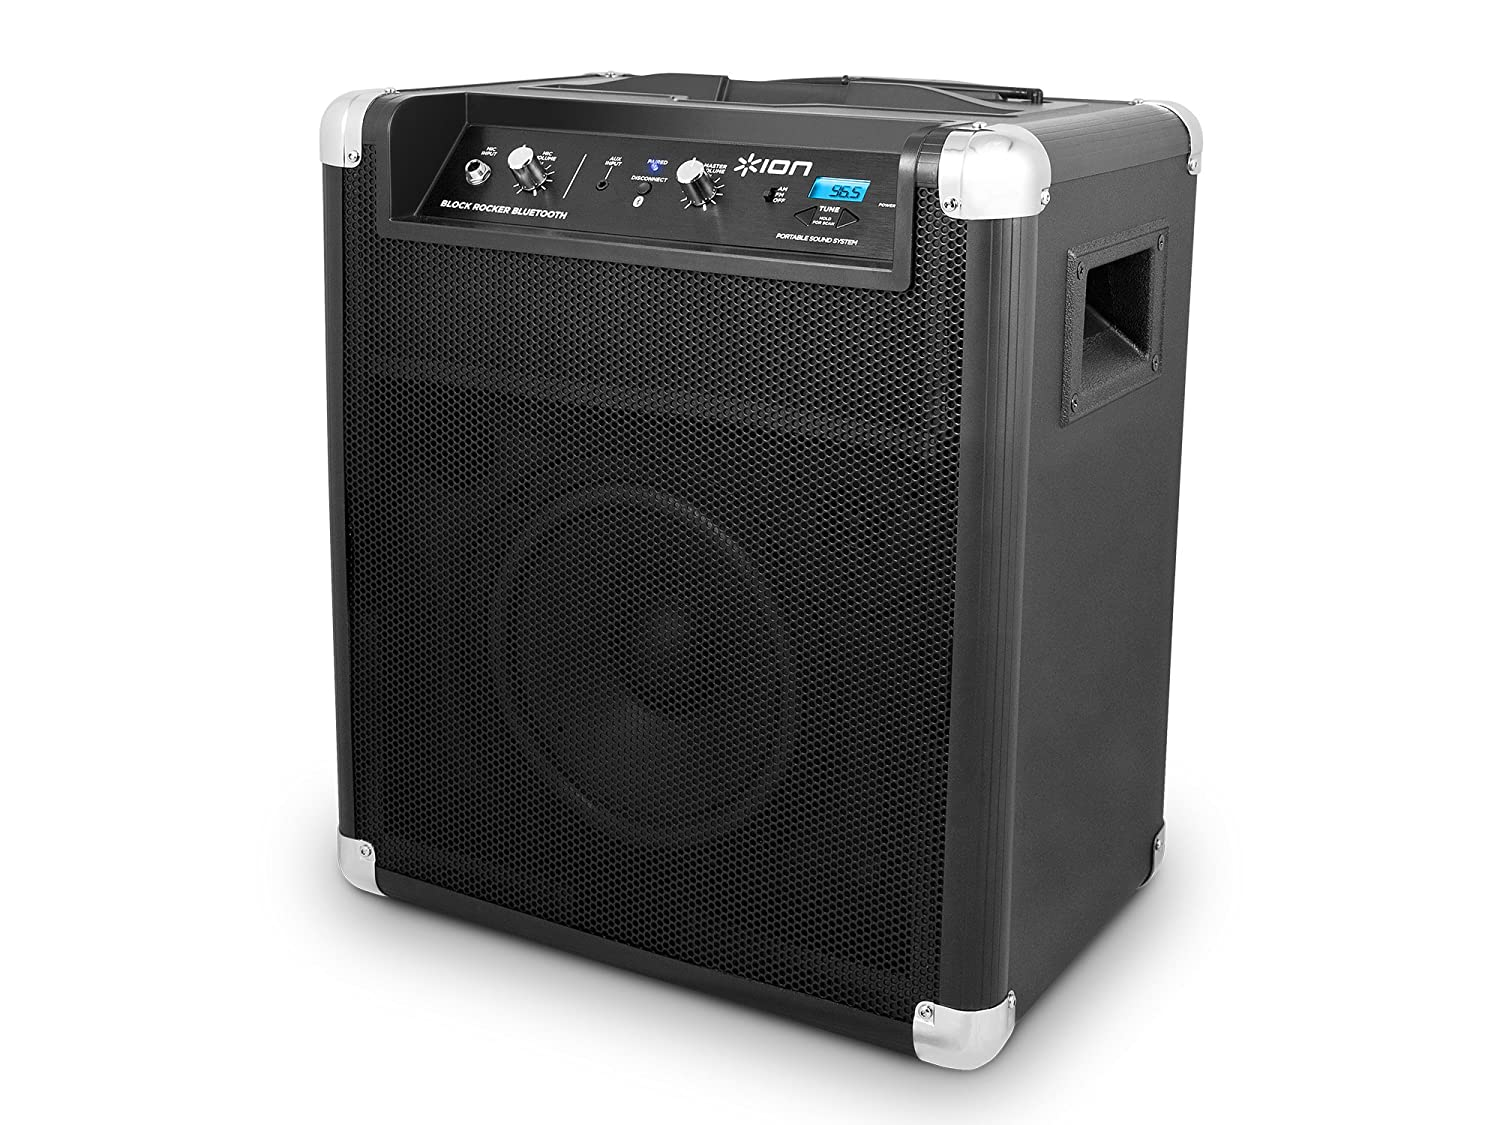 ION Block Rocker portable Bluetooth speaker system with telescoping handle & wheels $119.99